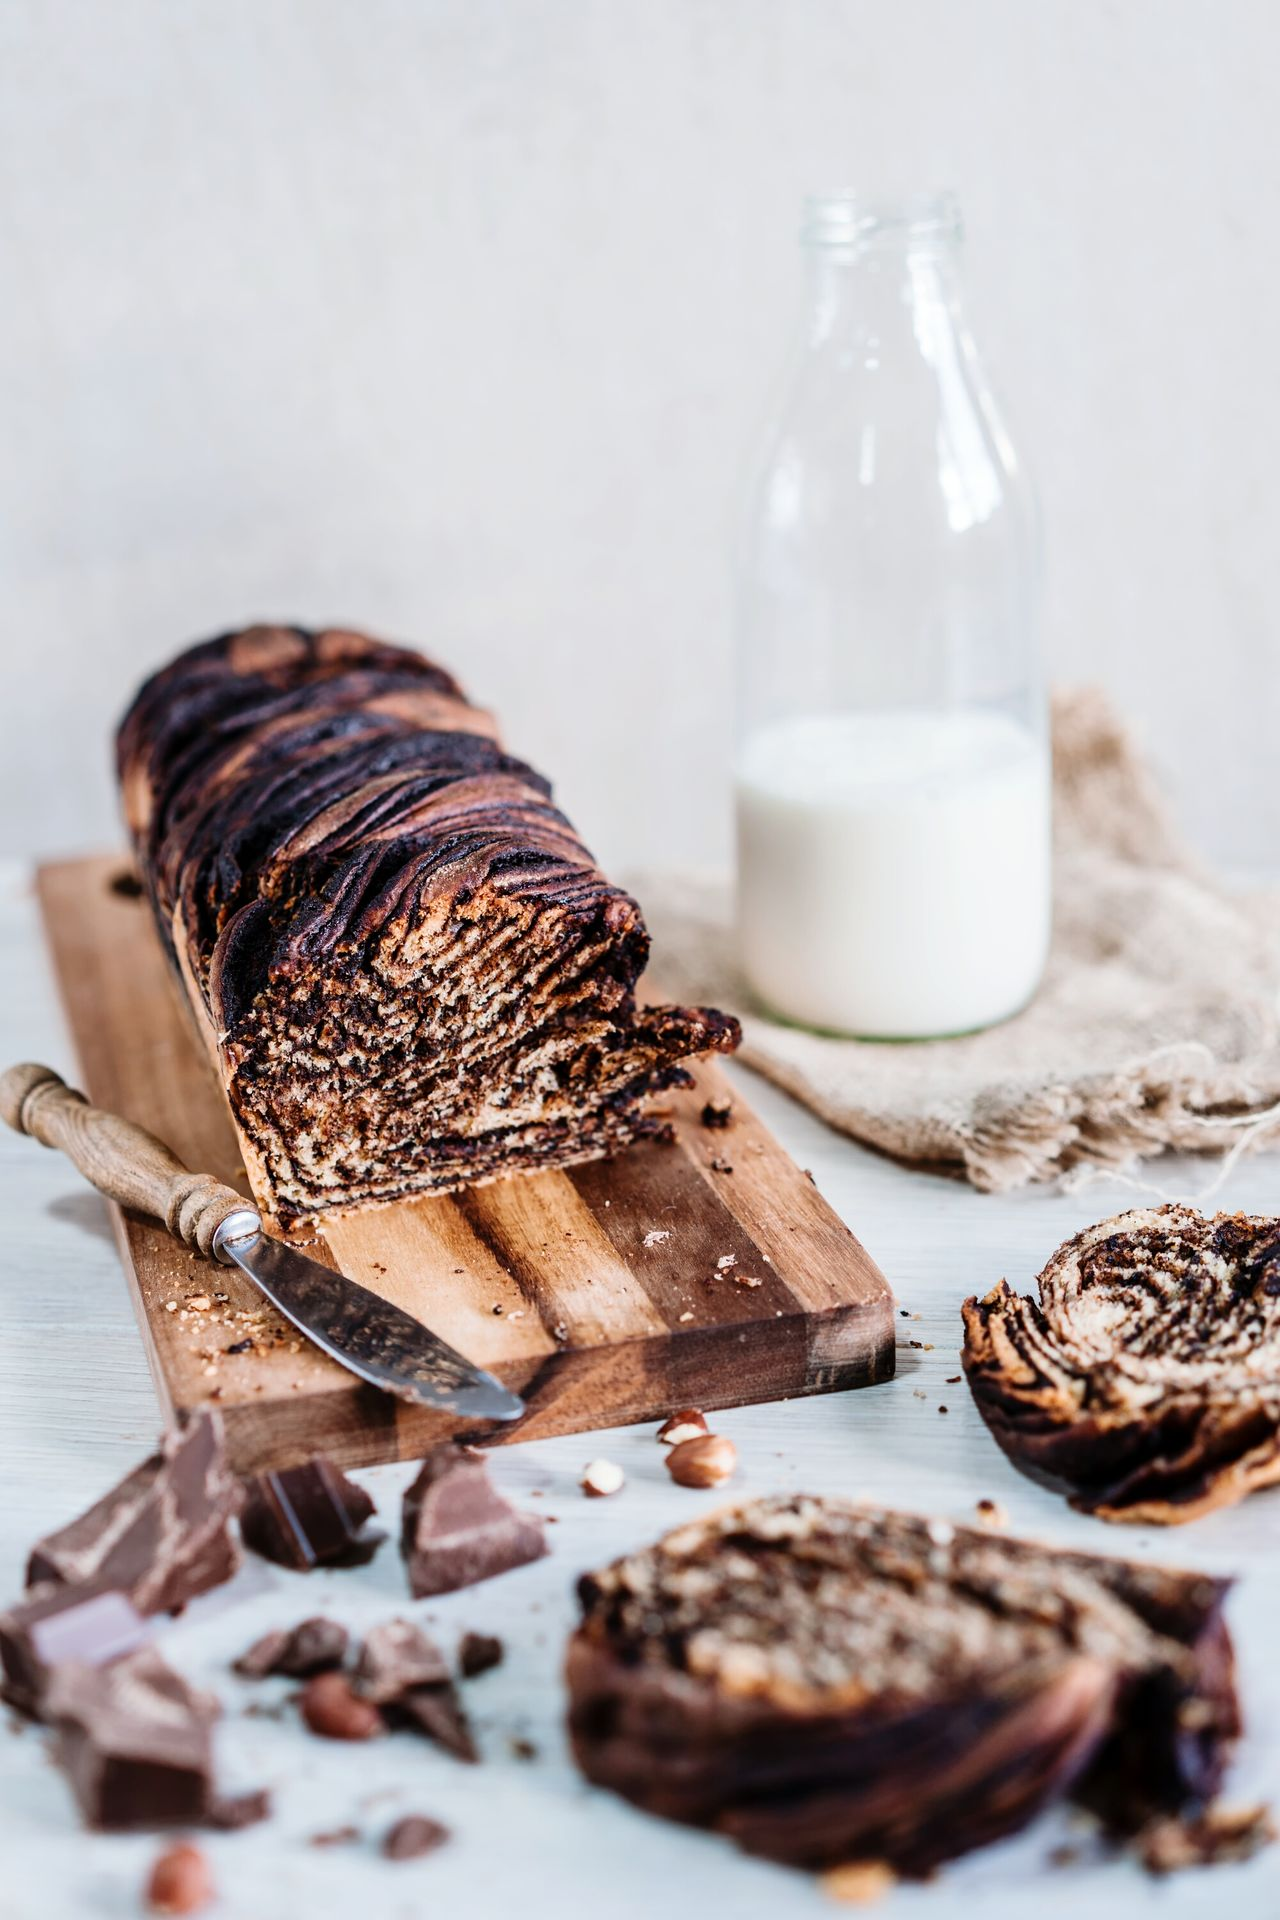 Delicious Babka 😊Food And Drink Milk Bottle Food Studio Shot Old-fashioned Homemade No People Indoors  Sweet Food The Week Of Eyeem Zeiss 55 F/1.8 Delicious ♡ Sweet Drinking Straw Drink Healthy Eating Close-up Freshness Day